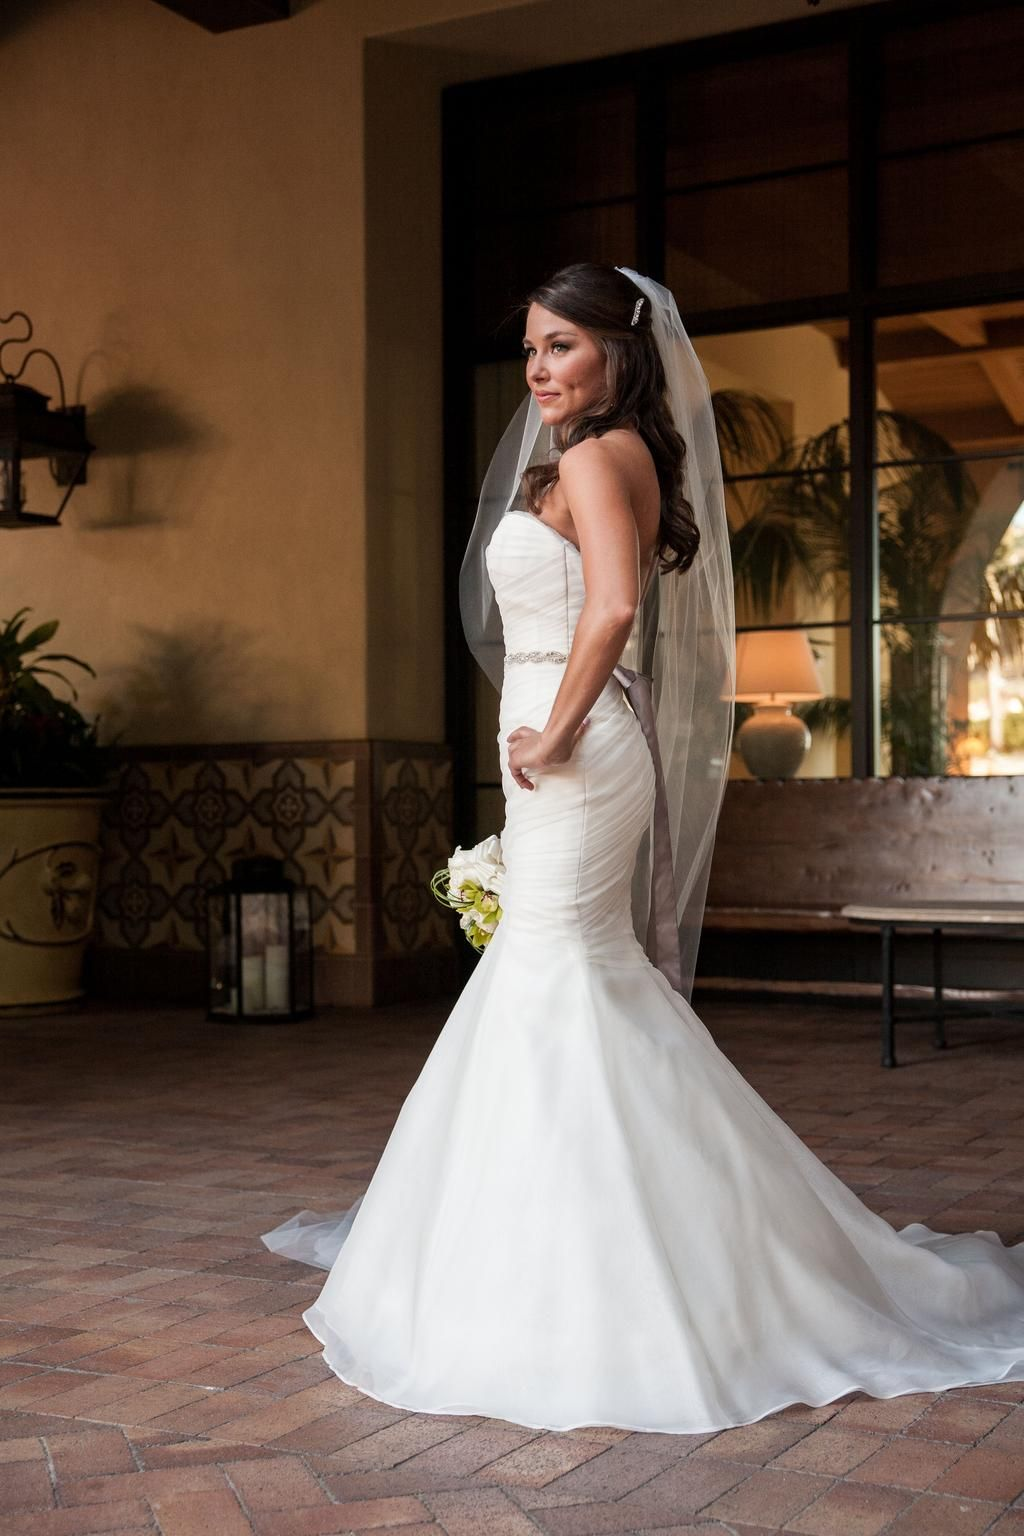 Selling my rivini wedding dress check out my new listing on search used wedding dresses preowned wedding gowns for sale ombrellifo Choice Image